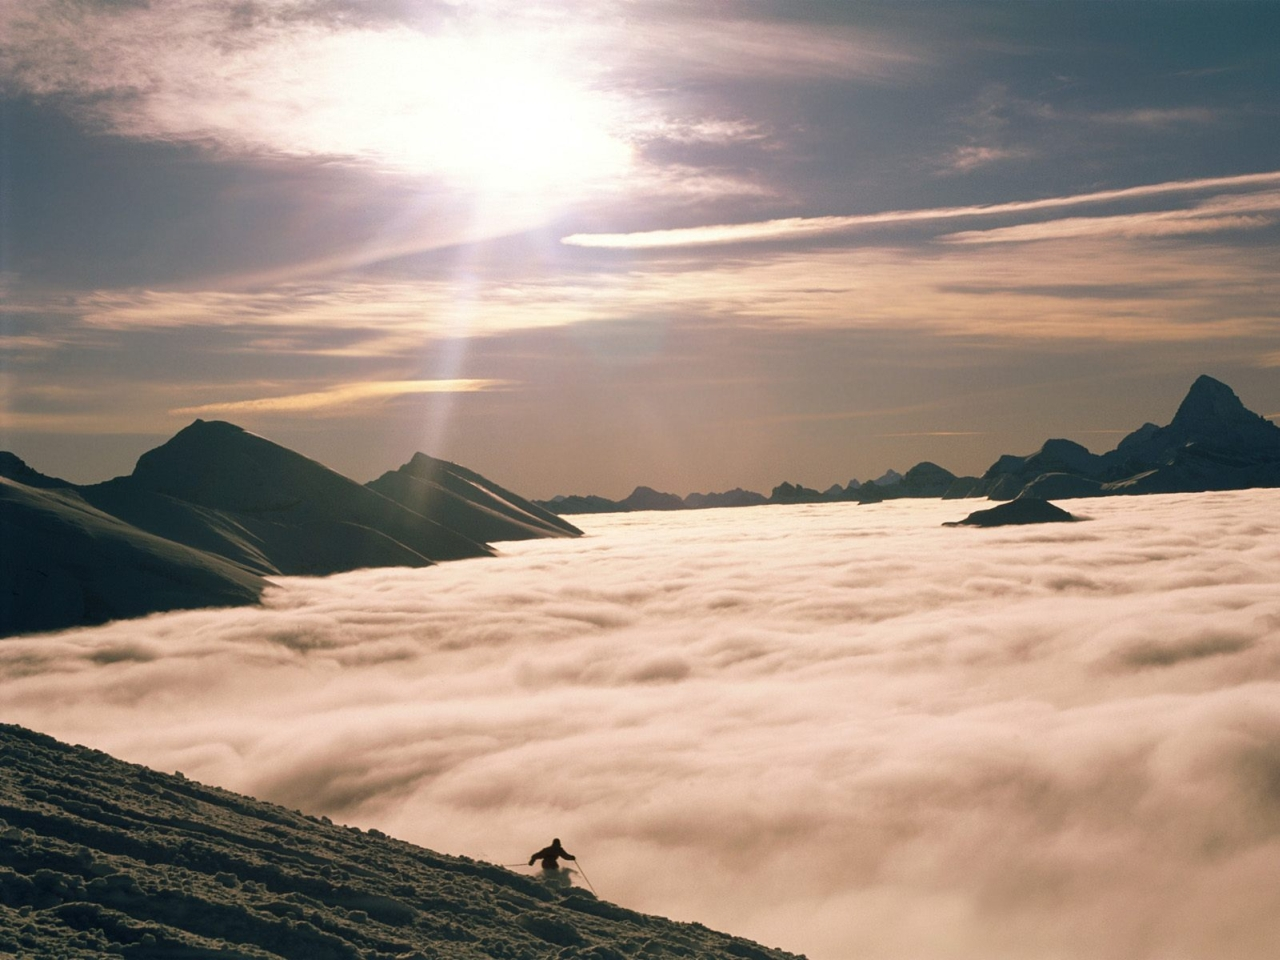 Conqueror of mountains above the clouds